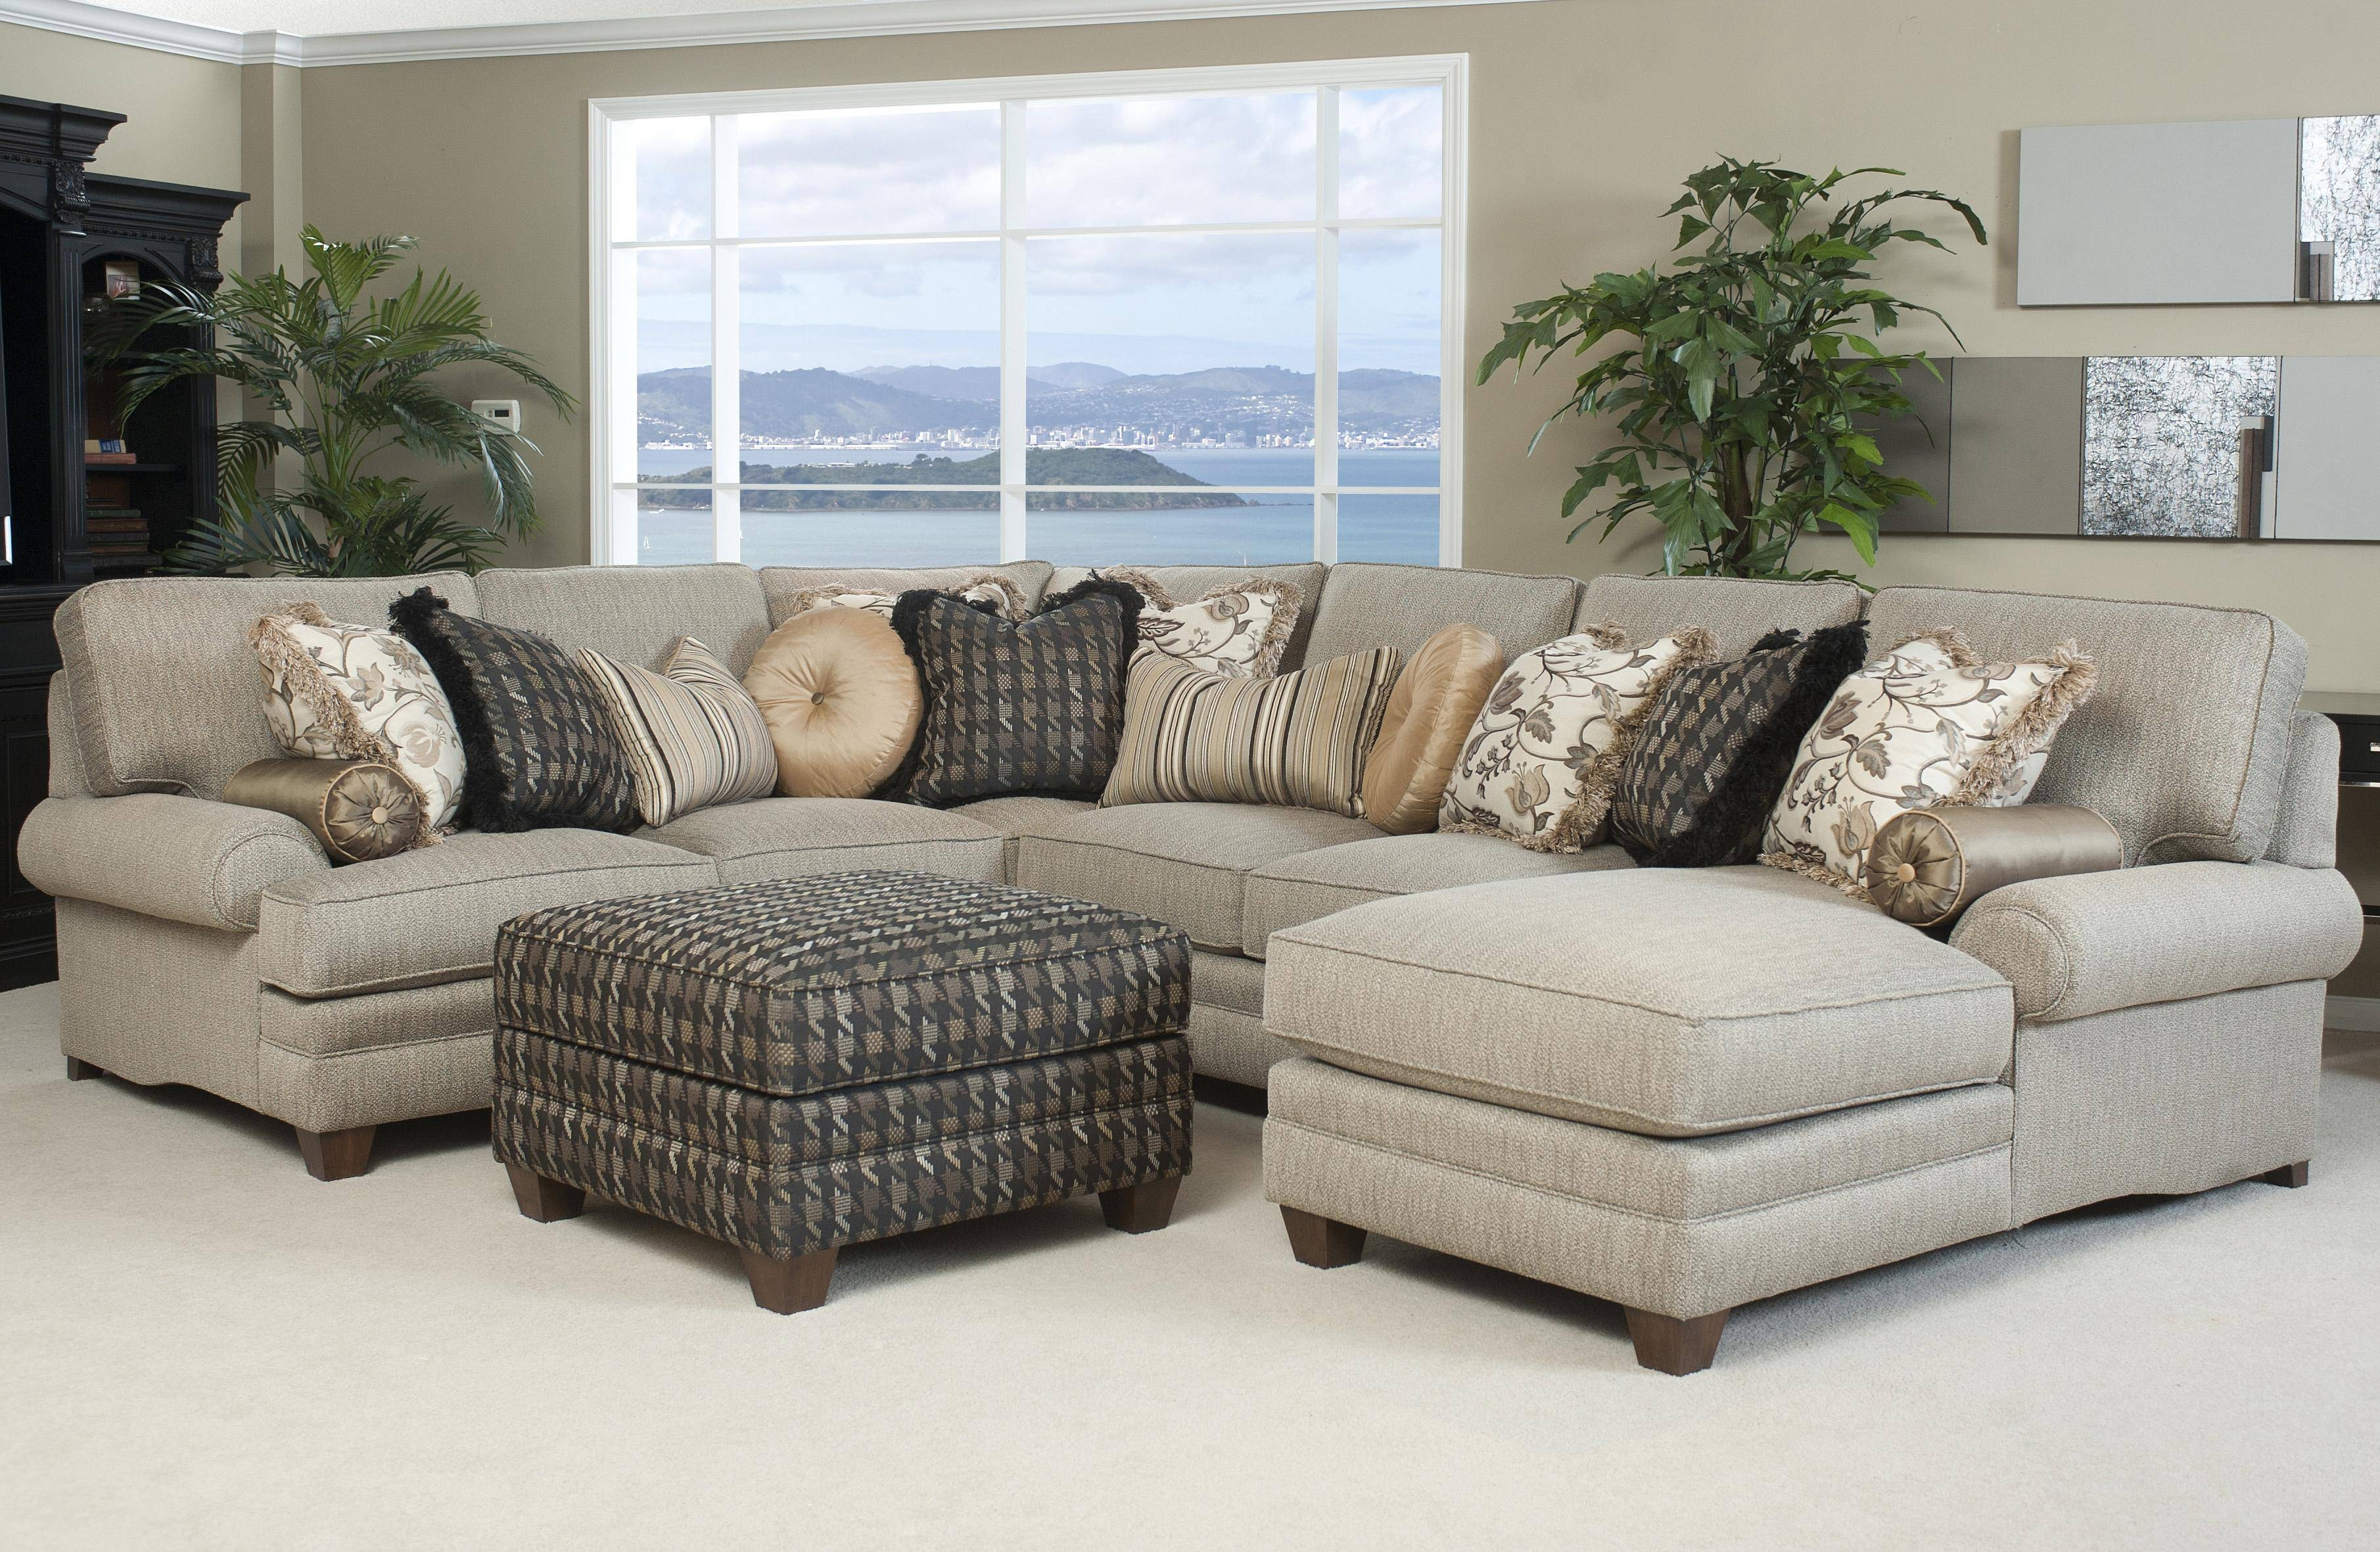 Traditional Styled Sectional Sofa With Comfortable Pillowed Seat within Traditional Sectional Sofas (Image 25 of 25)